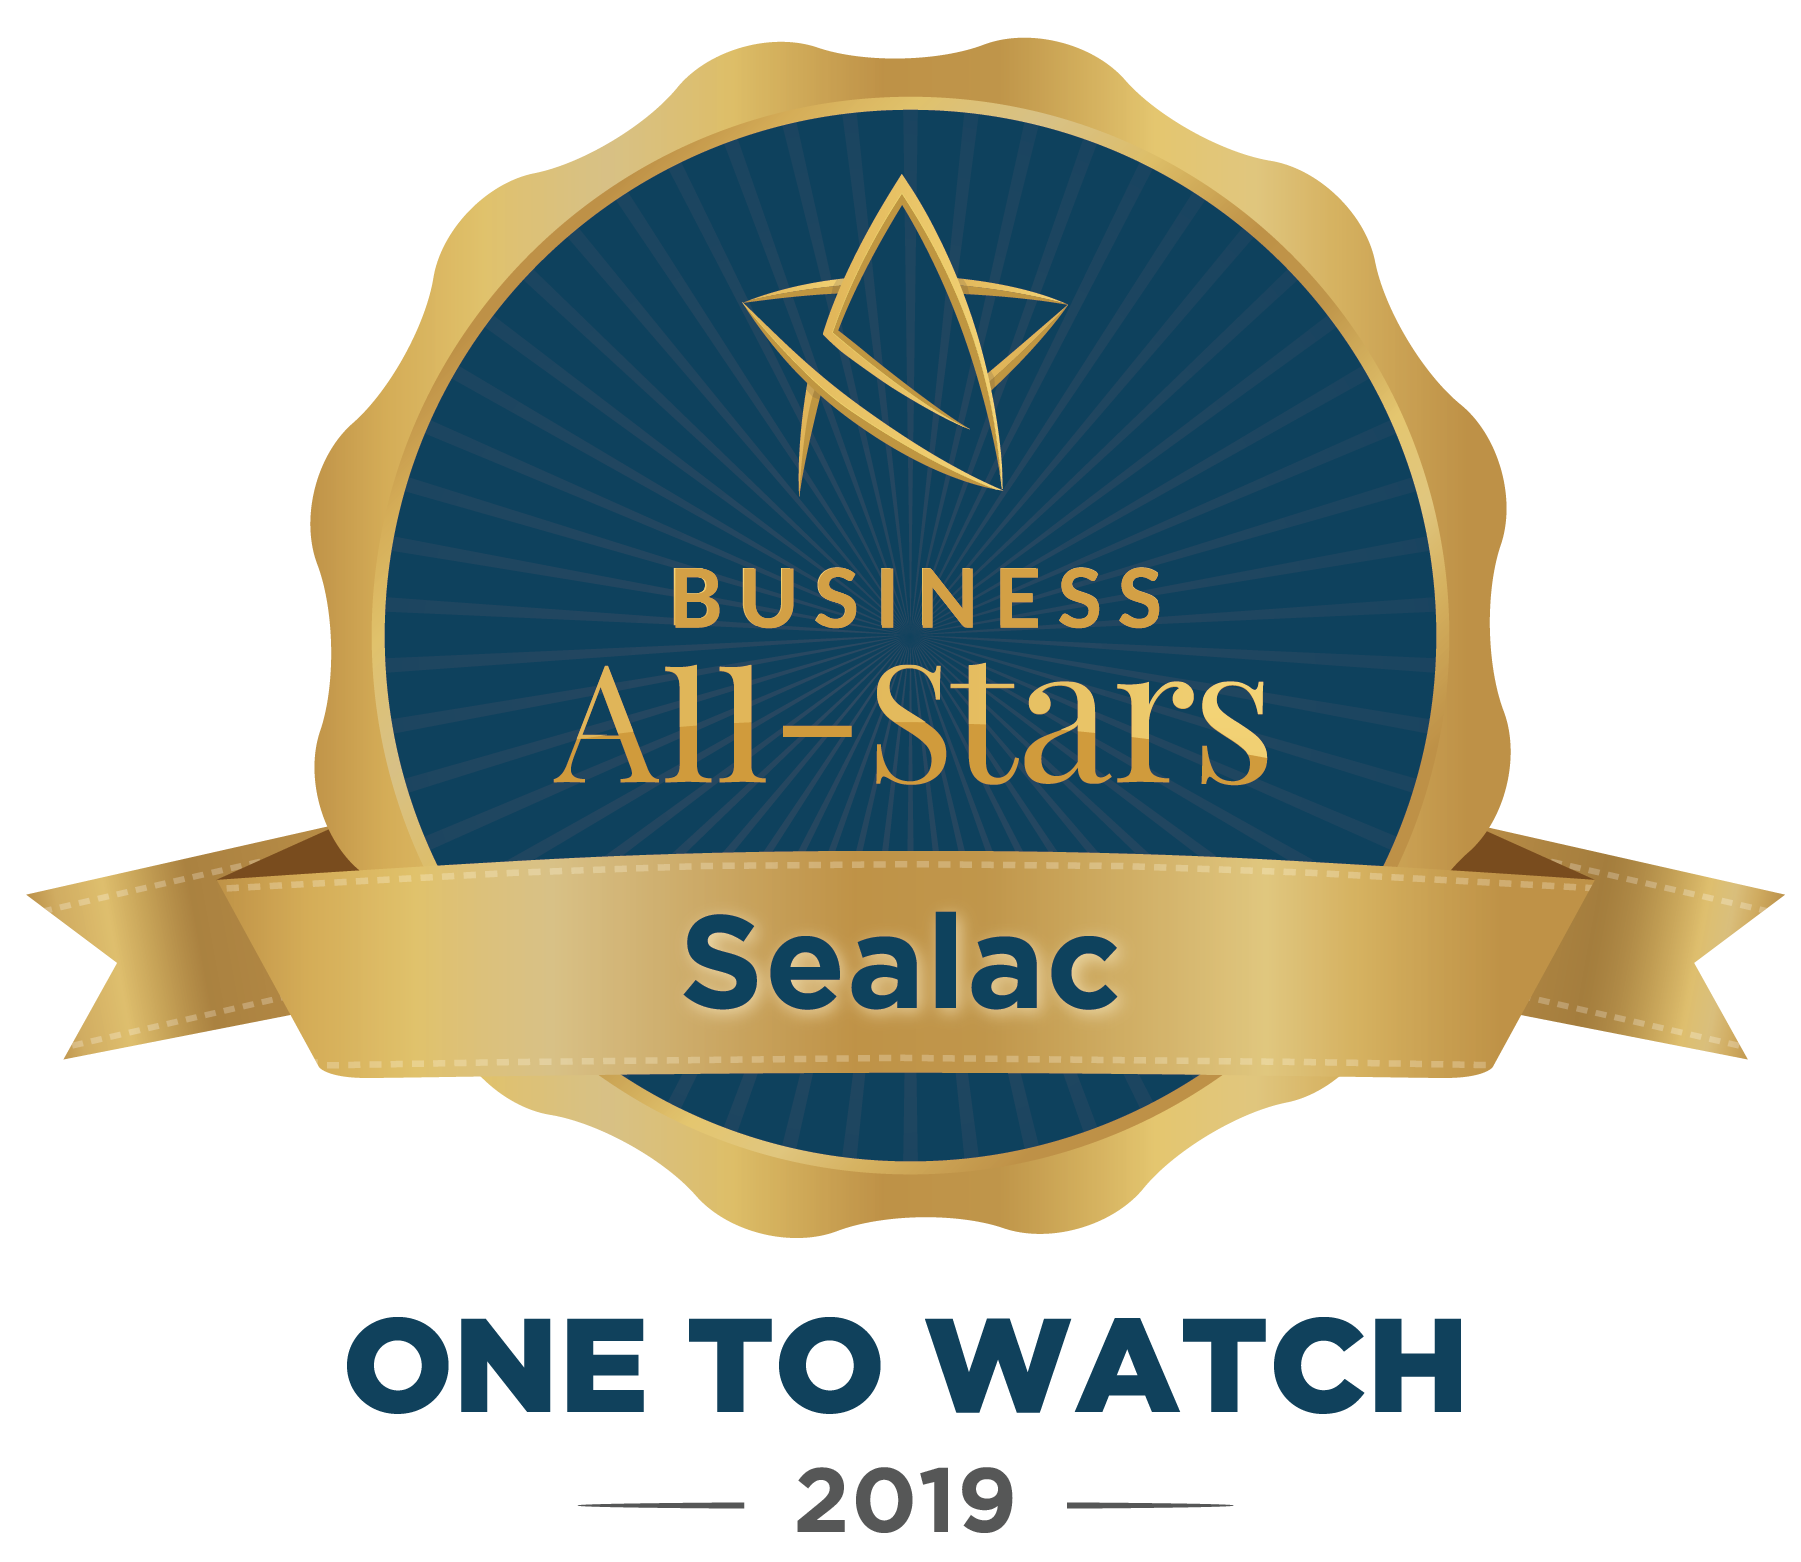 Sealac - Business All-Stars Accreditation